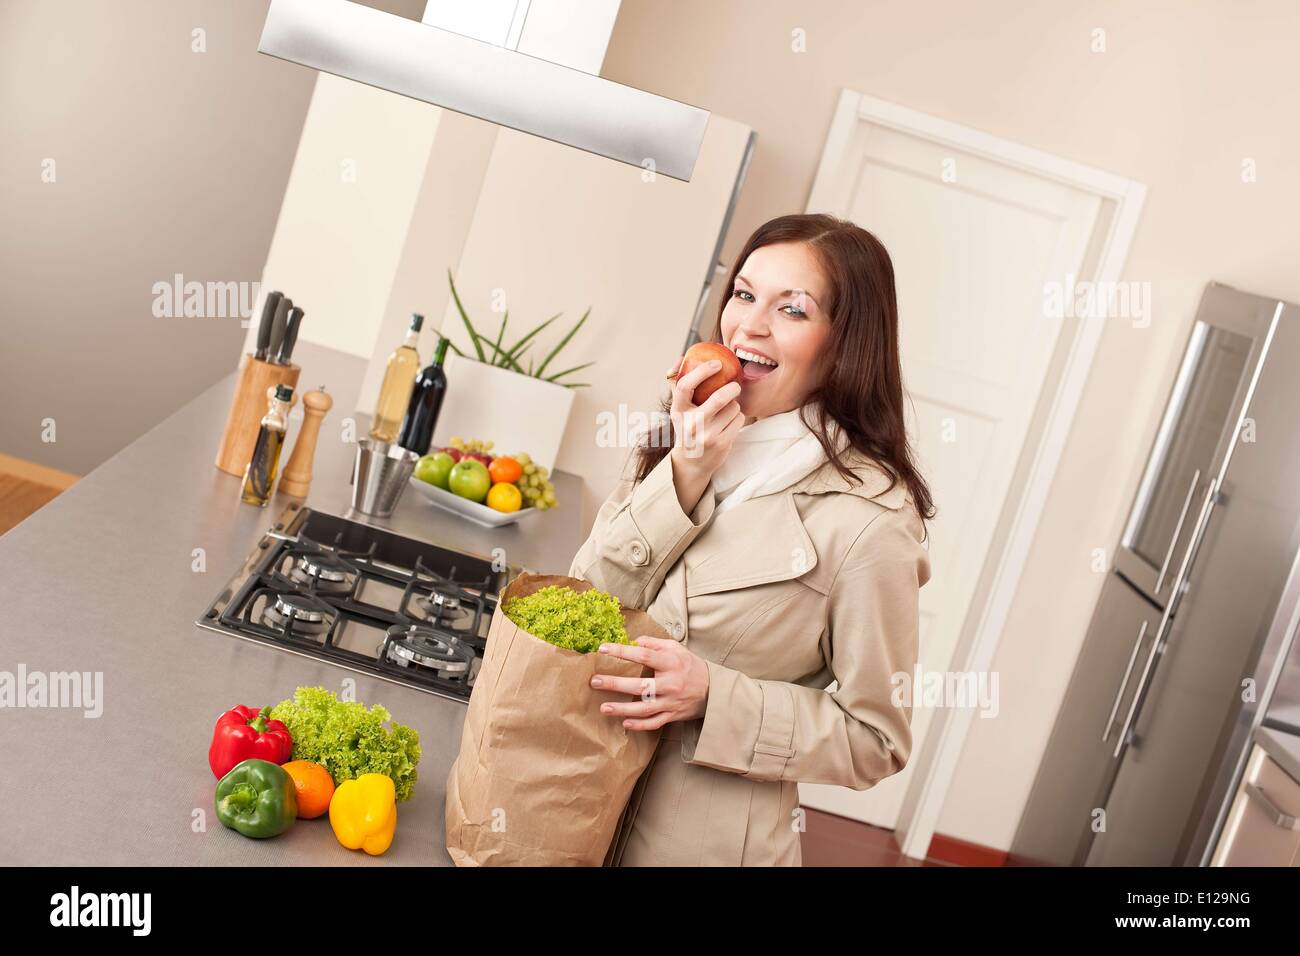 Jan. 23, 2010 - Jan. 23, 2010 - Young woman unpacking shopping bag with grocery in kitchen, biting apple - Stock Image